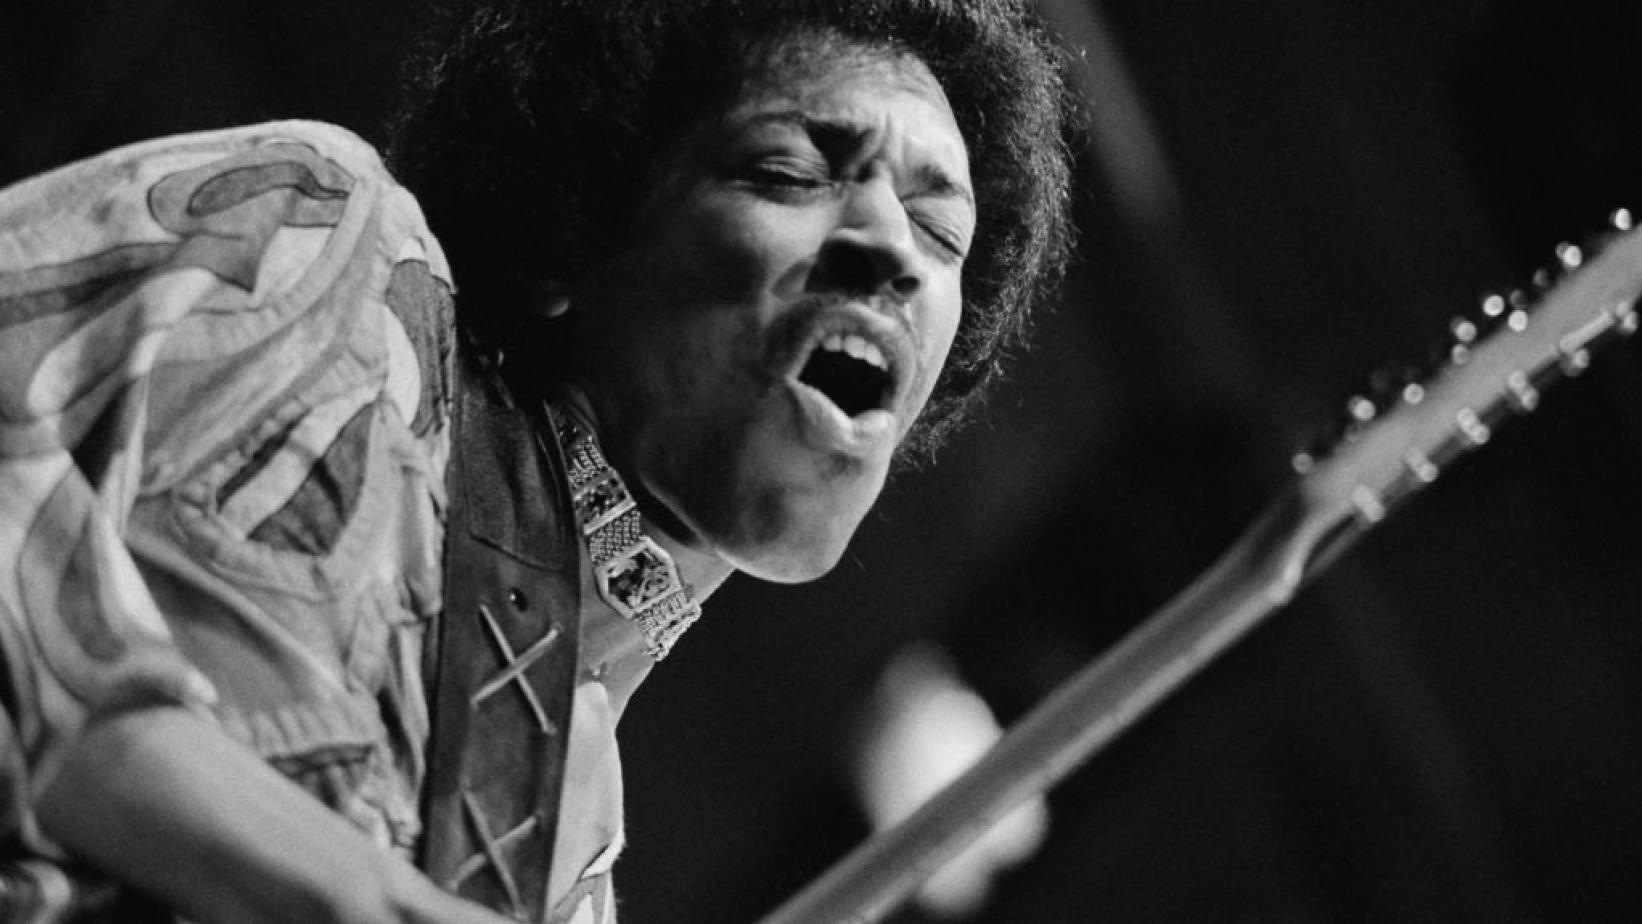 Jimi Hendrix performs at the Isle of Wight Festival in 1970